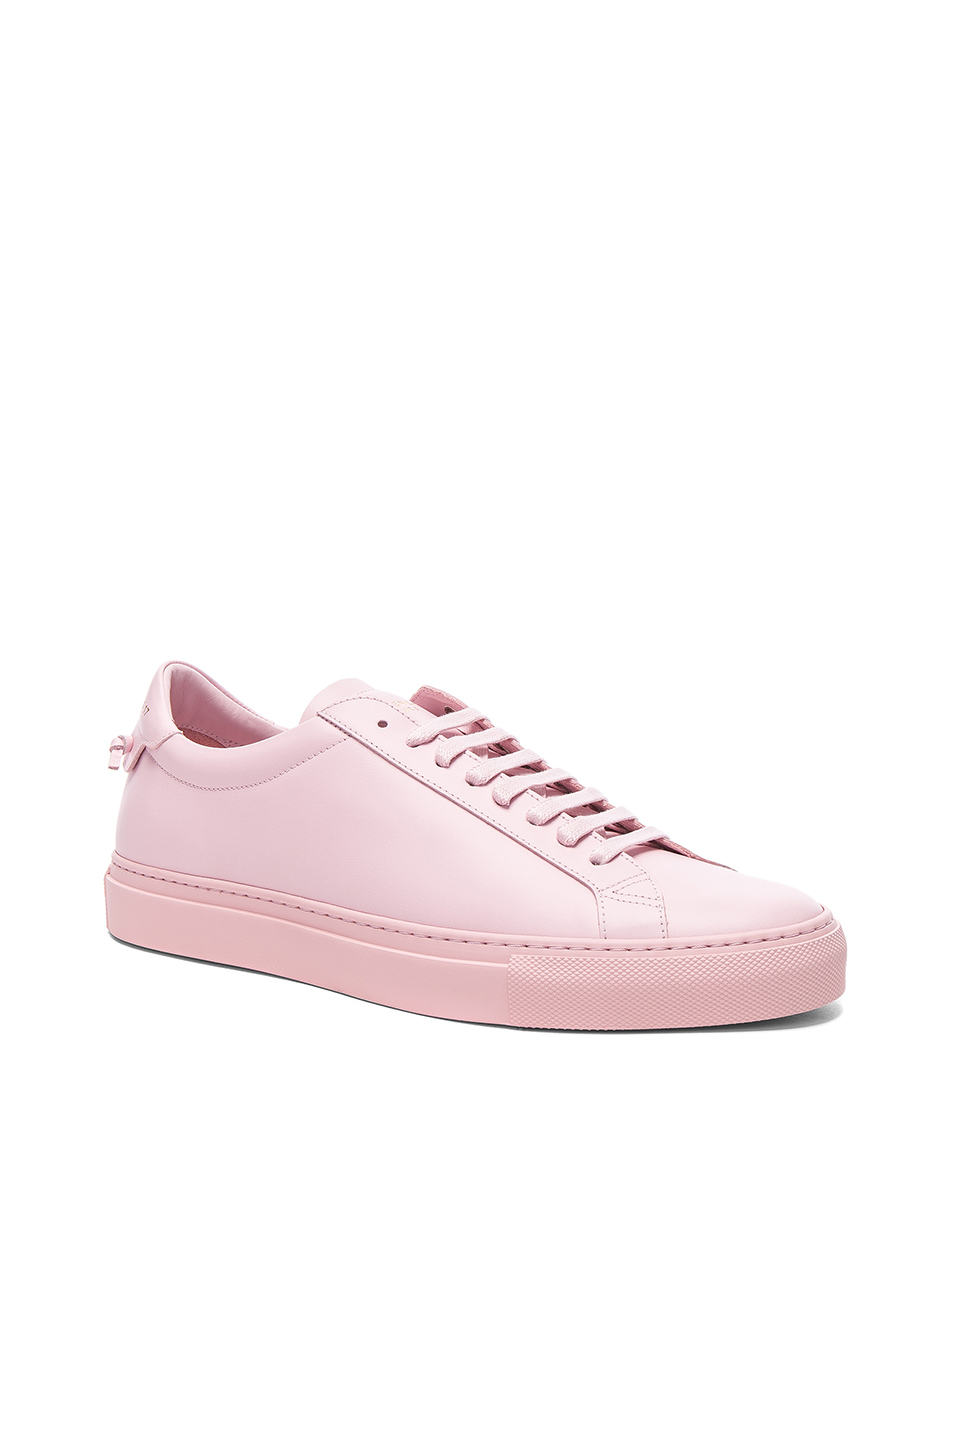 Givenchy Leather Urban Tie Knot Sneakers In Pale Pink